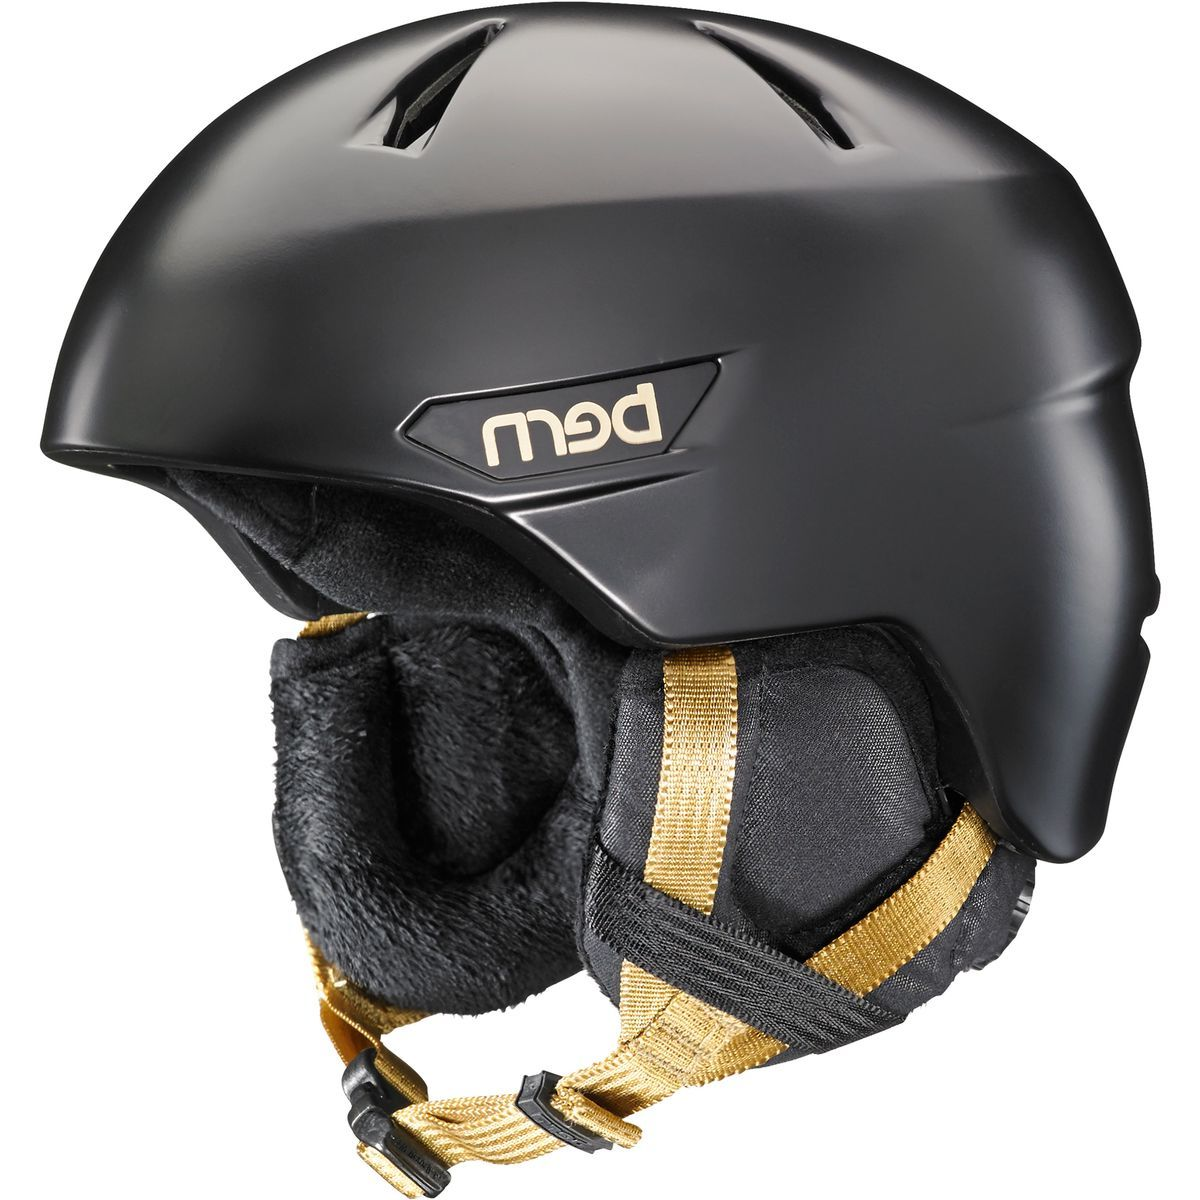 The 20 Best Snowboard Helmets & Goggles for Ladies reviews